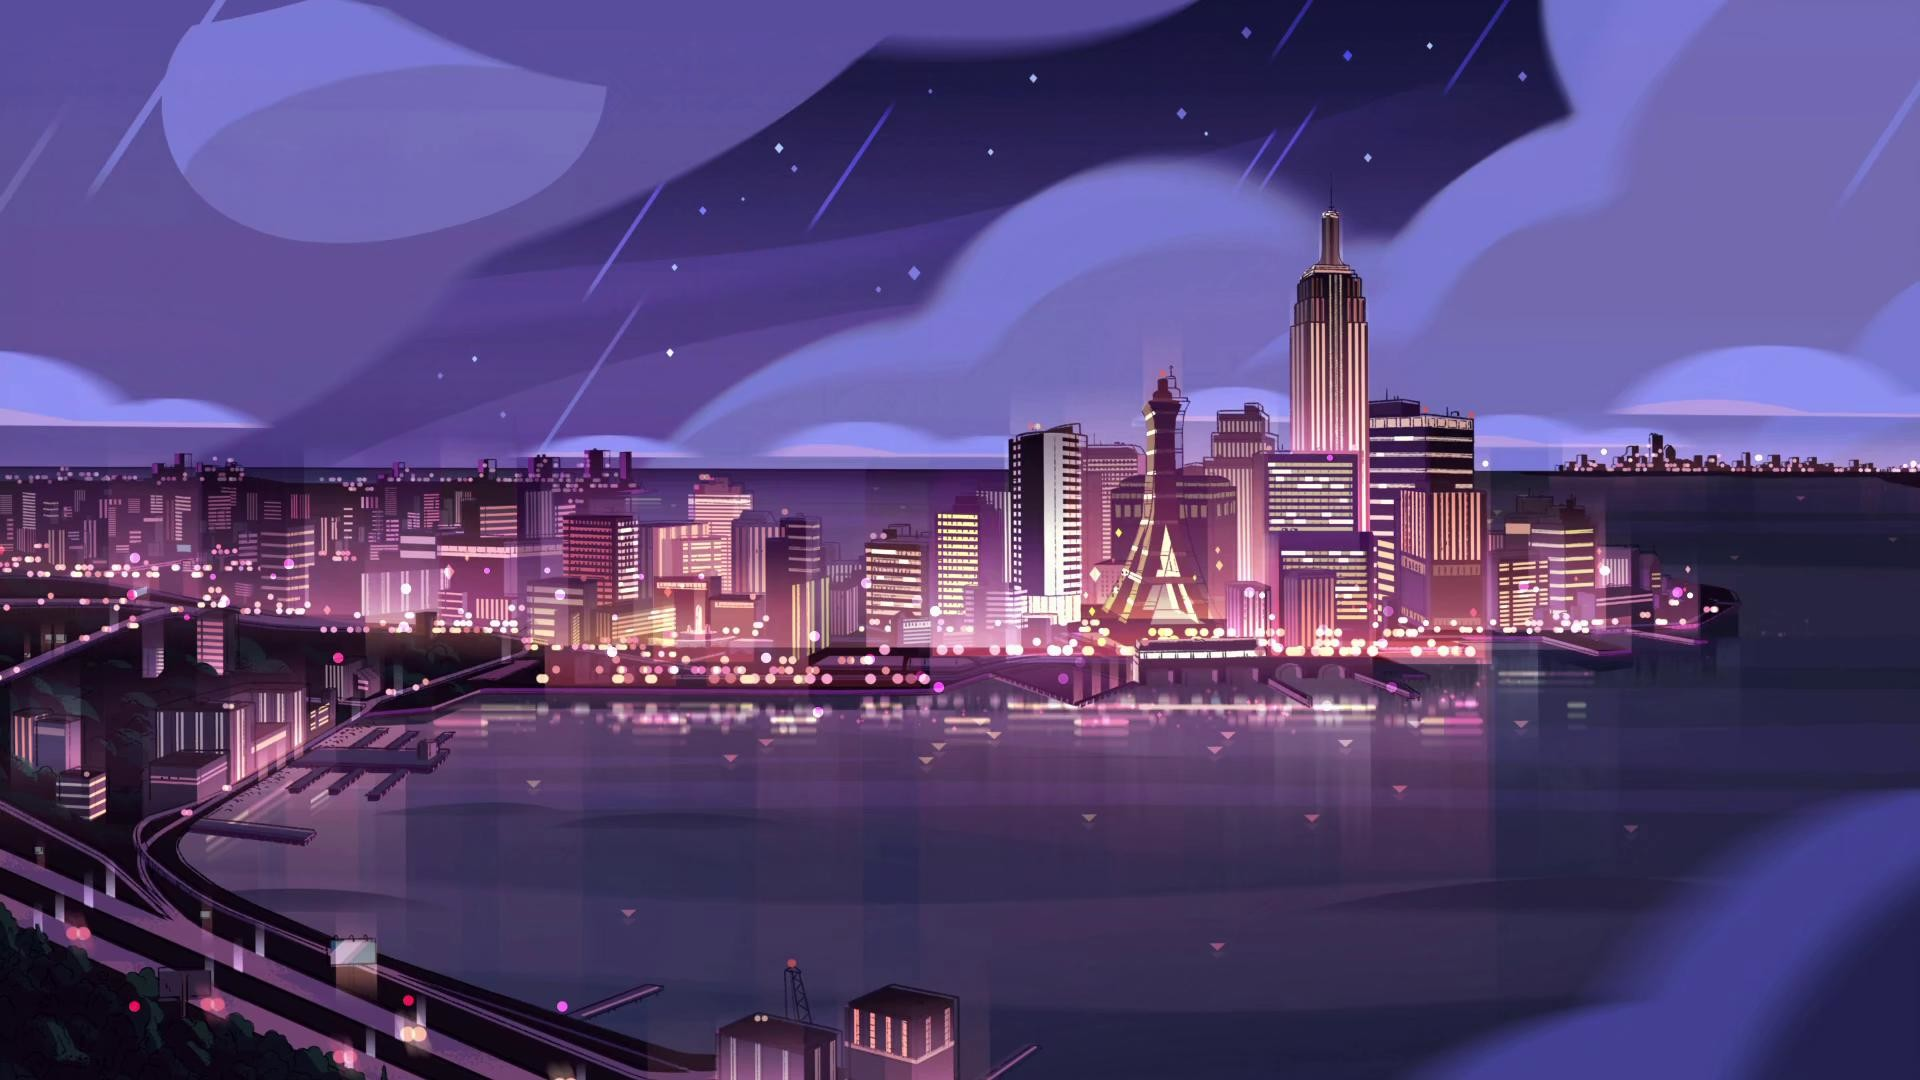 Res: 1920x1080, Awesome Steven Universe HD Wallpapers Collection: Steven Universe HD  Wallpapers